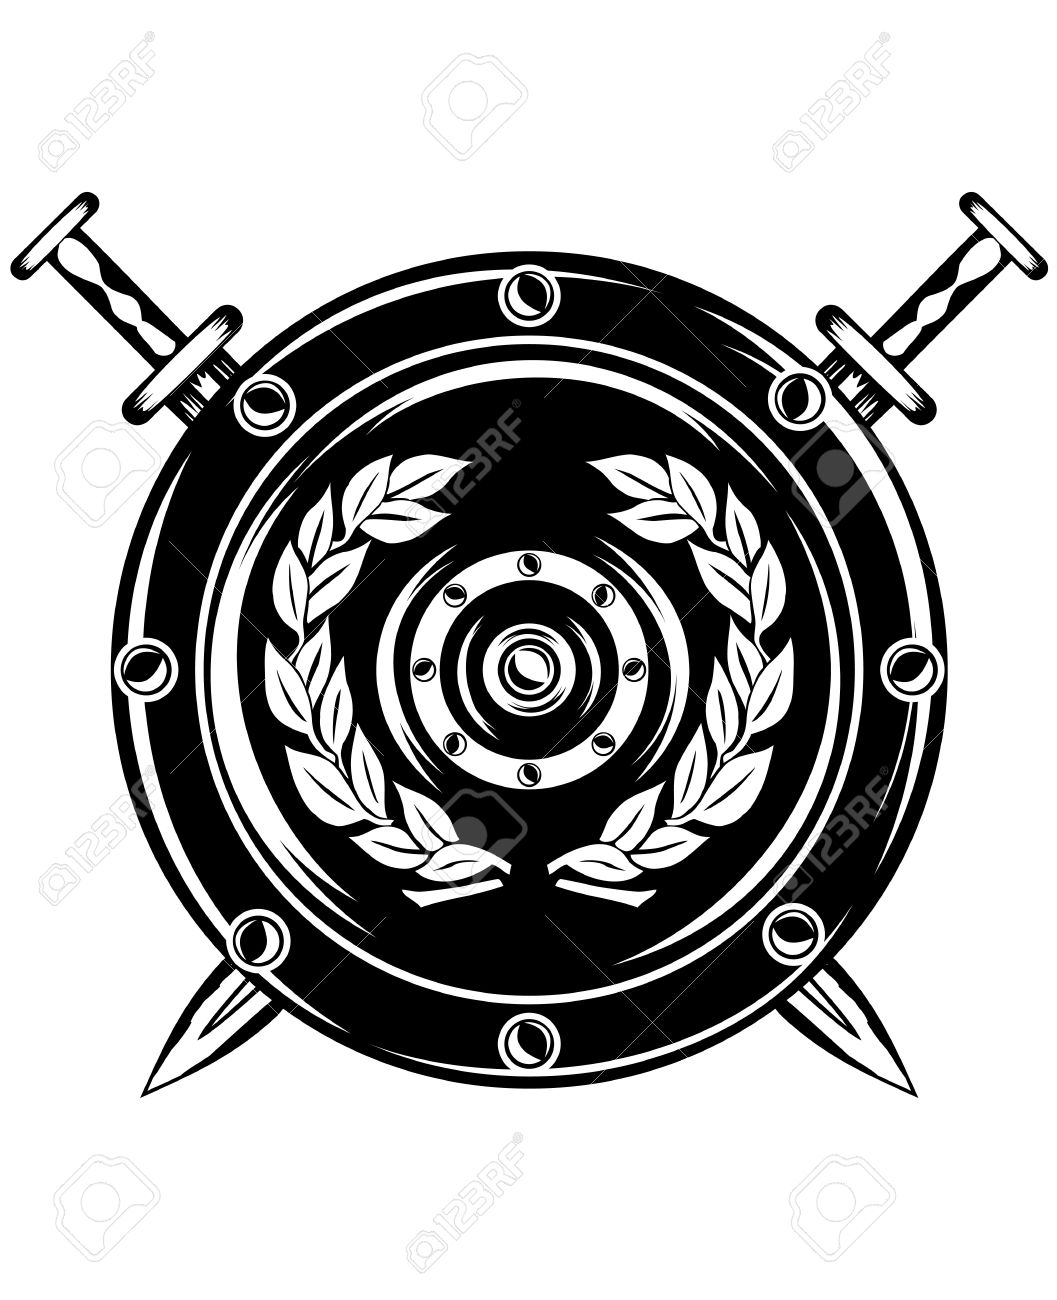 1057x1300 Image Of Shield And Crossed Swords Royalty Free Cliparts, Vectors